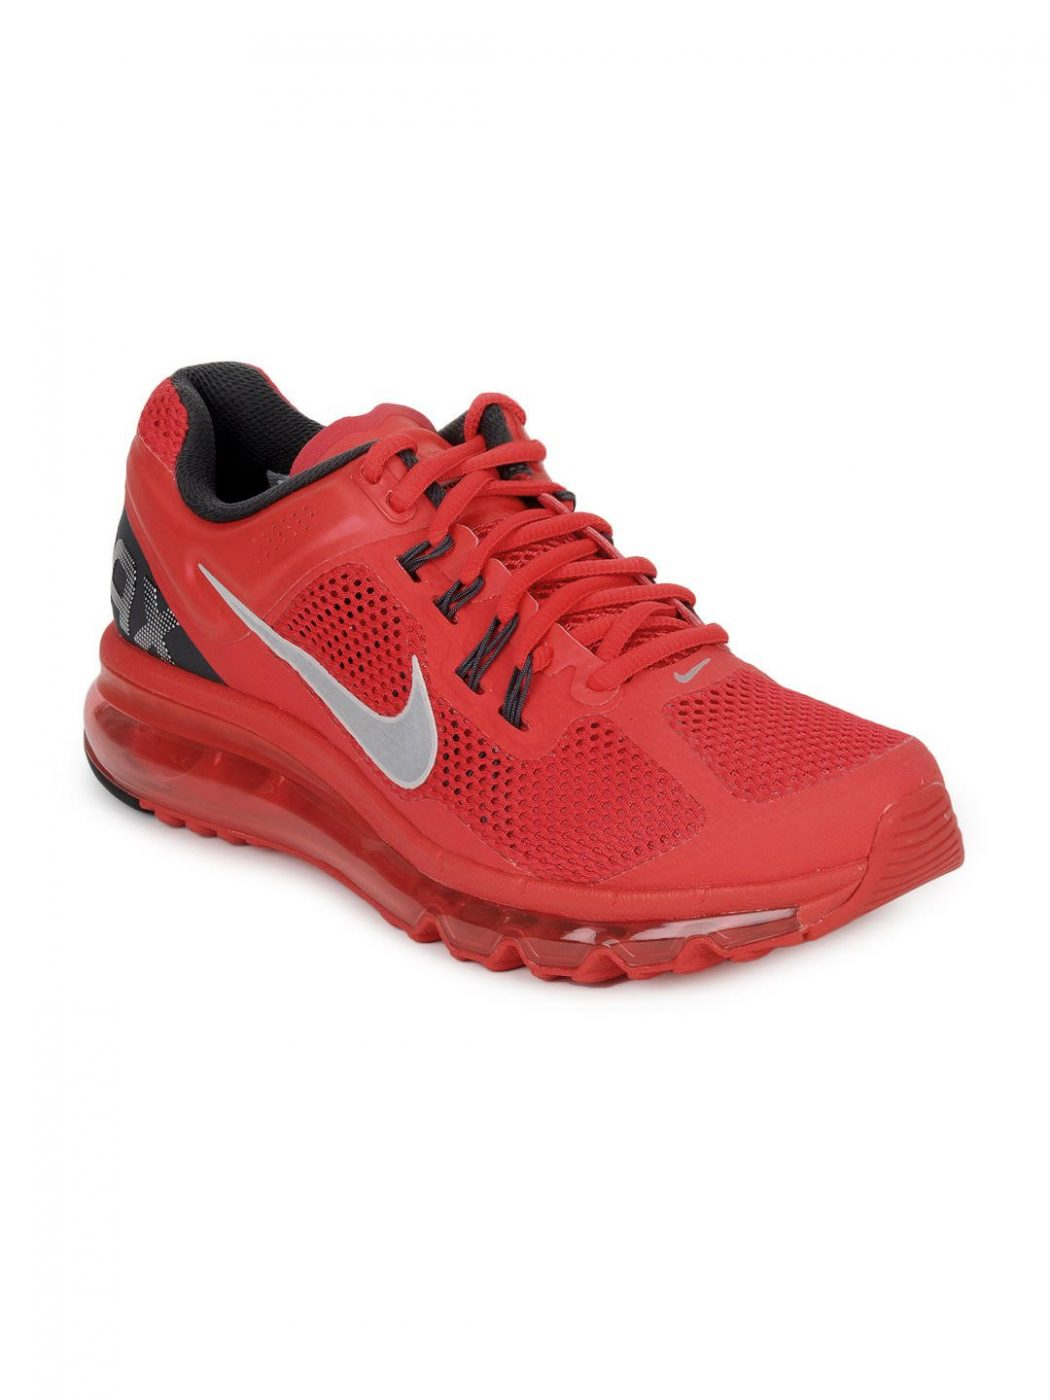 Nike-Men-Red-AIR-MAX-2013-Sports-Shoes_25b08f8e56d422edd4712953658578c0_images_1080_1440_mini The Most Stylish Nike Shoes For Men